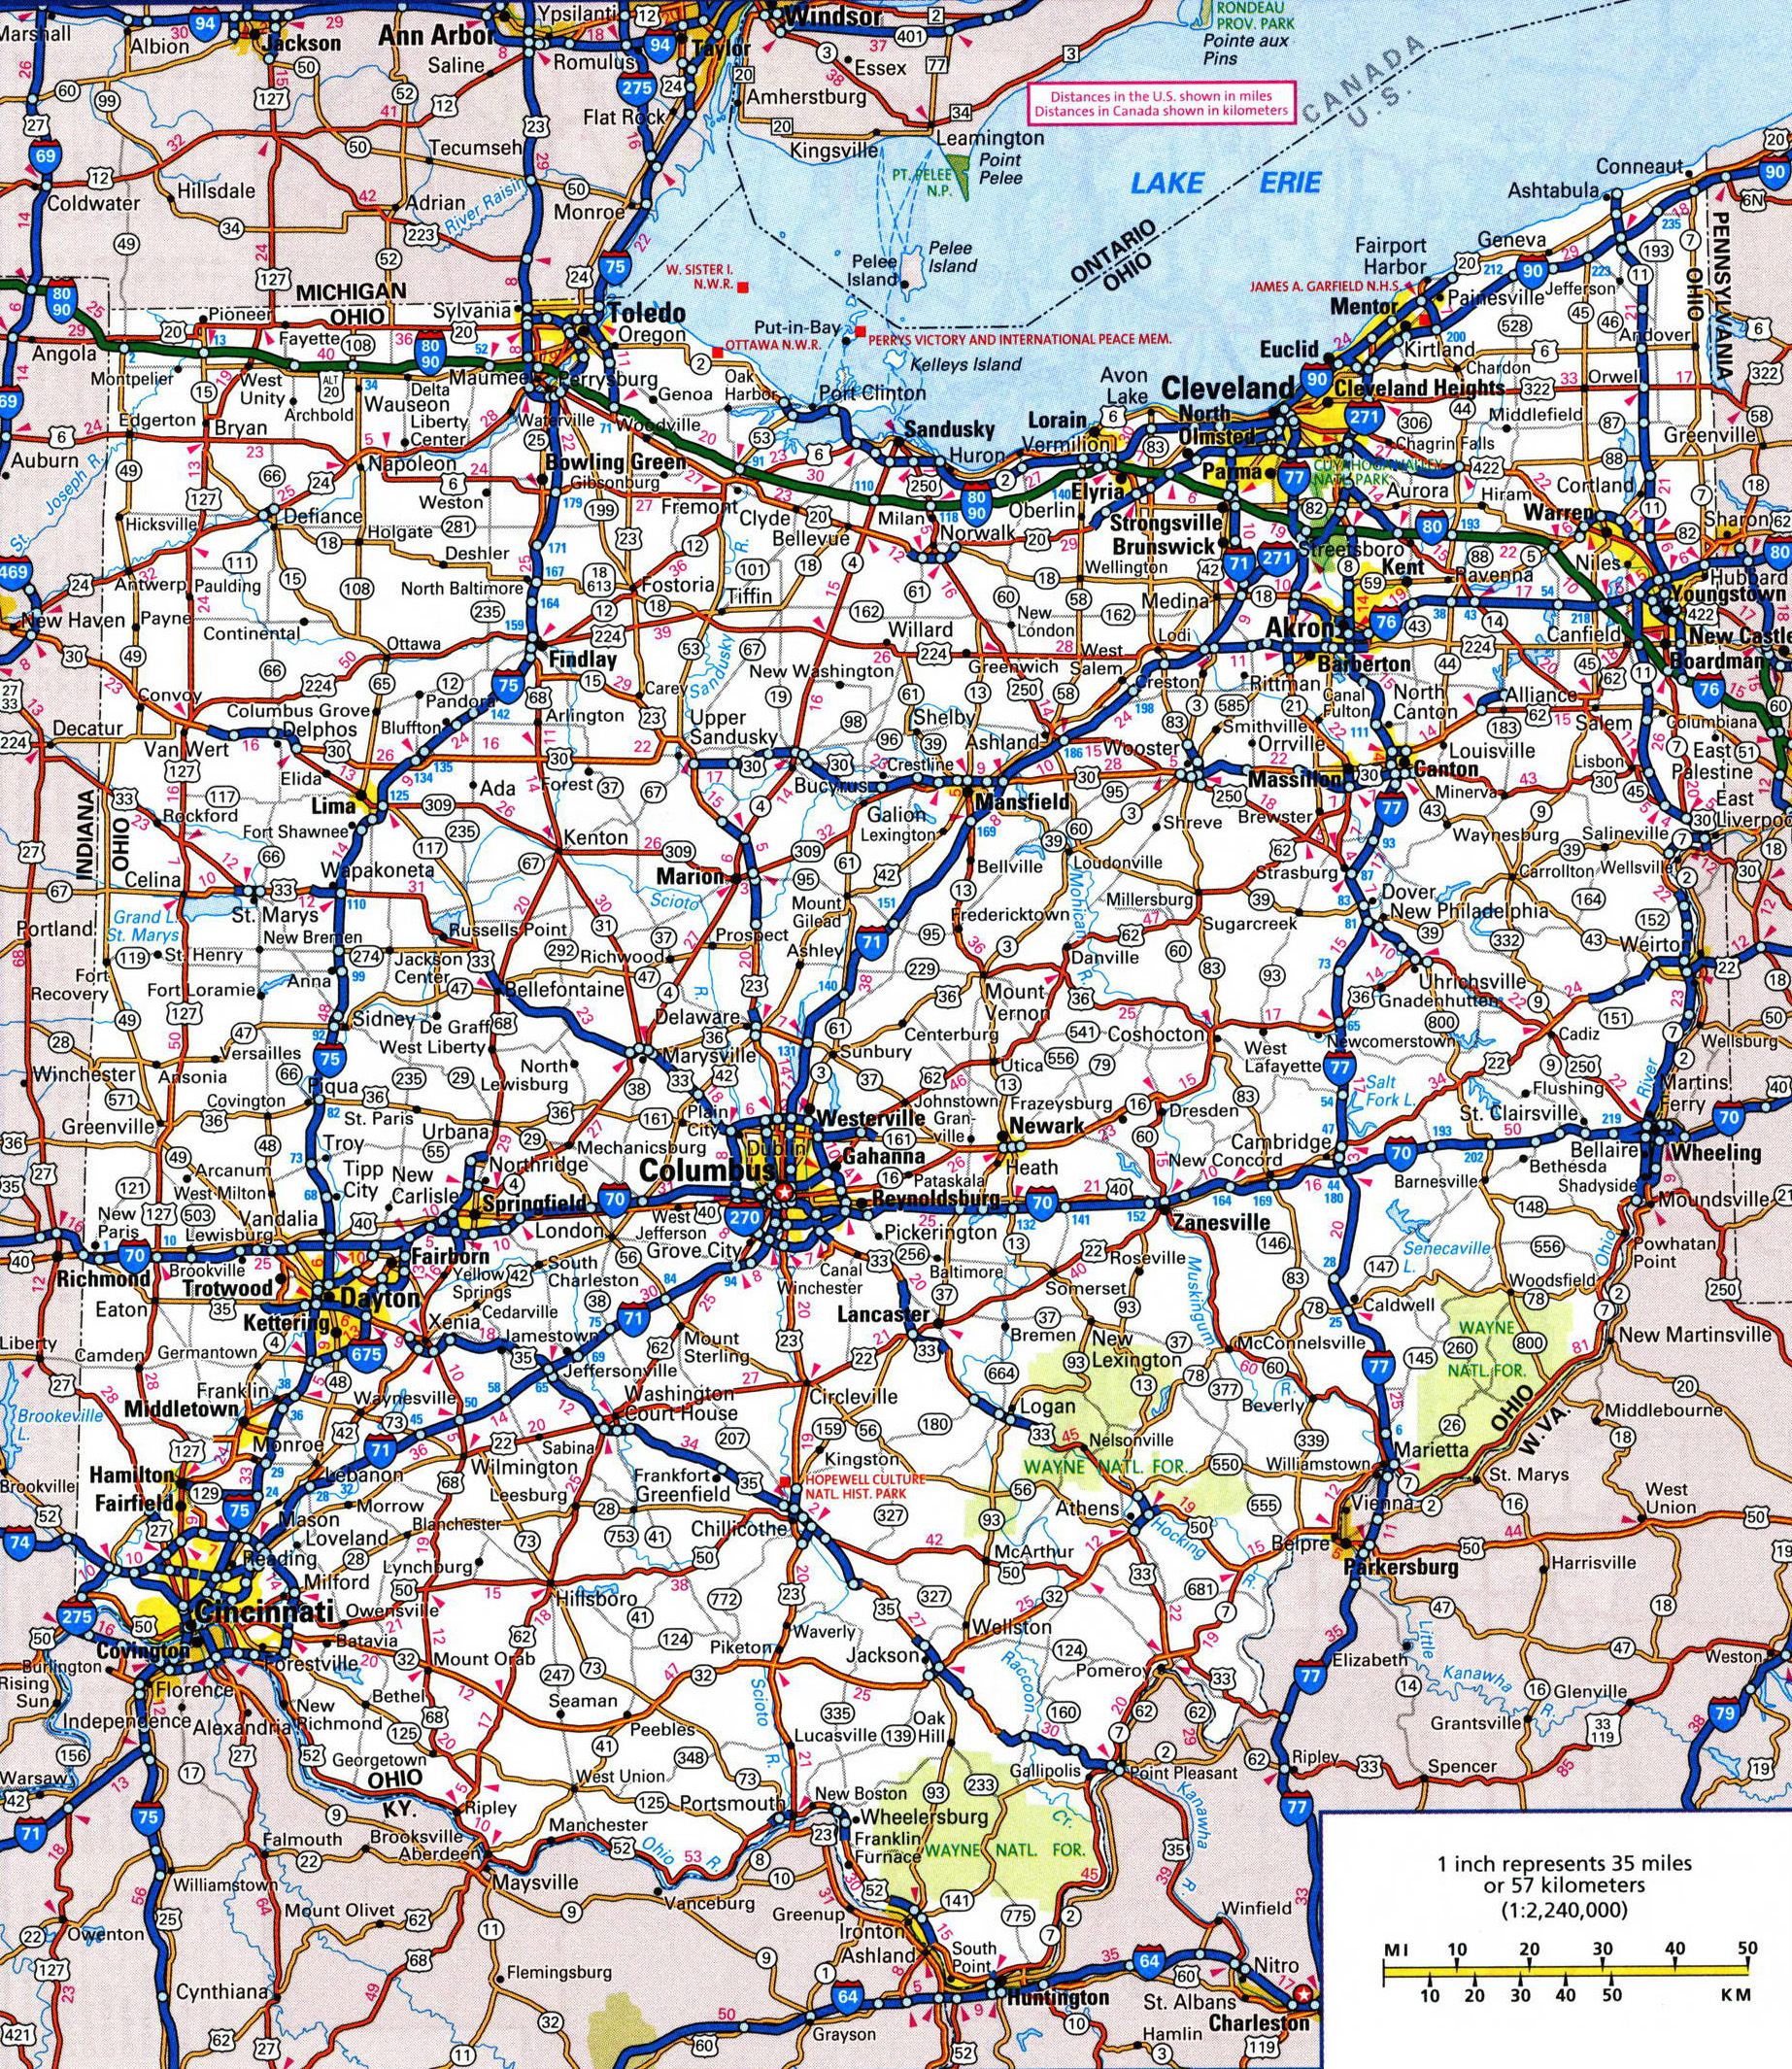 Large Detailed Roads And Highways Map Of Ohio State With All - Detailed usa map with states and cities